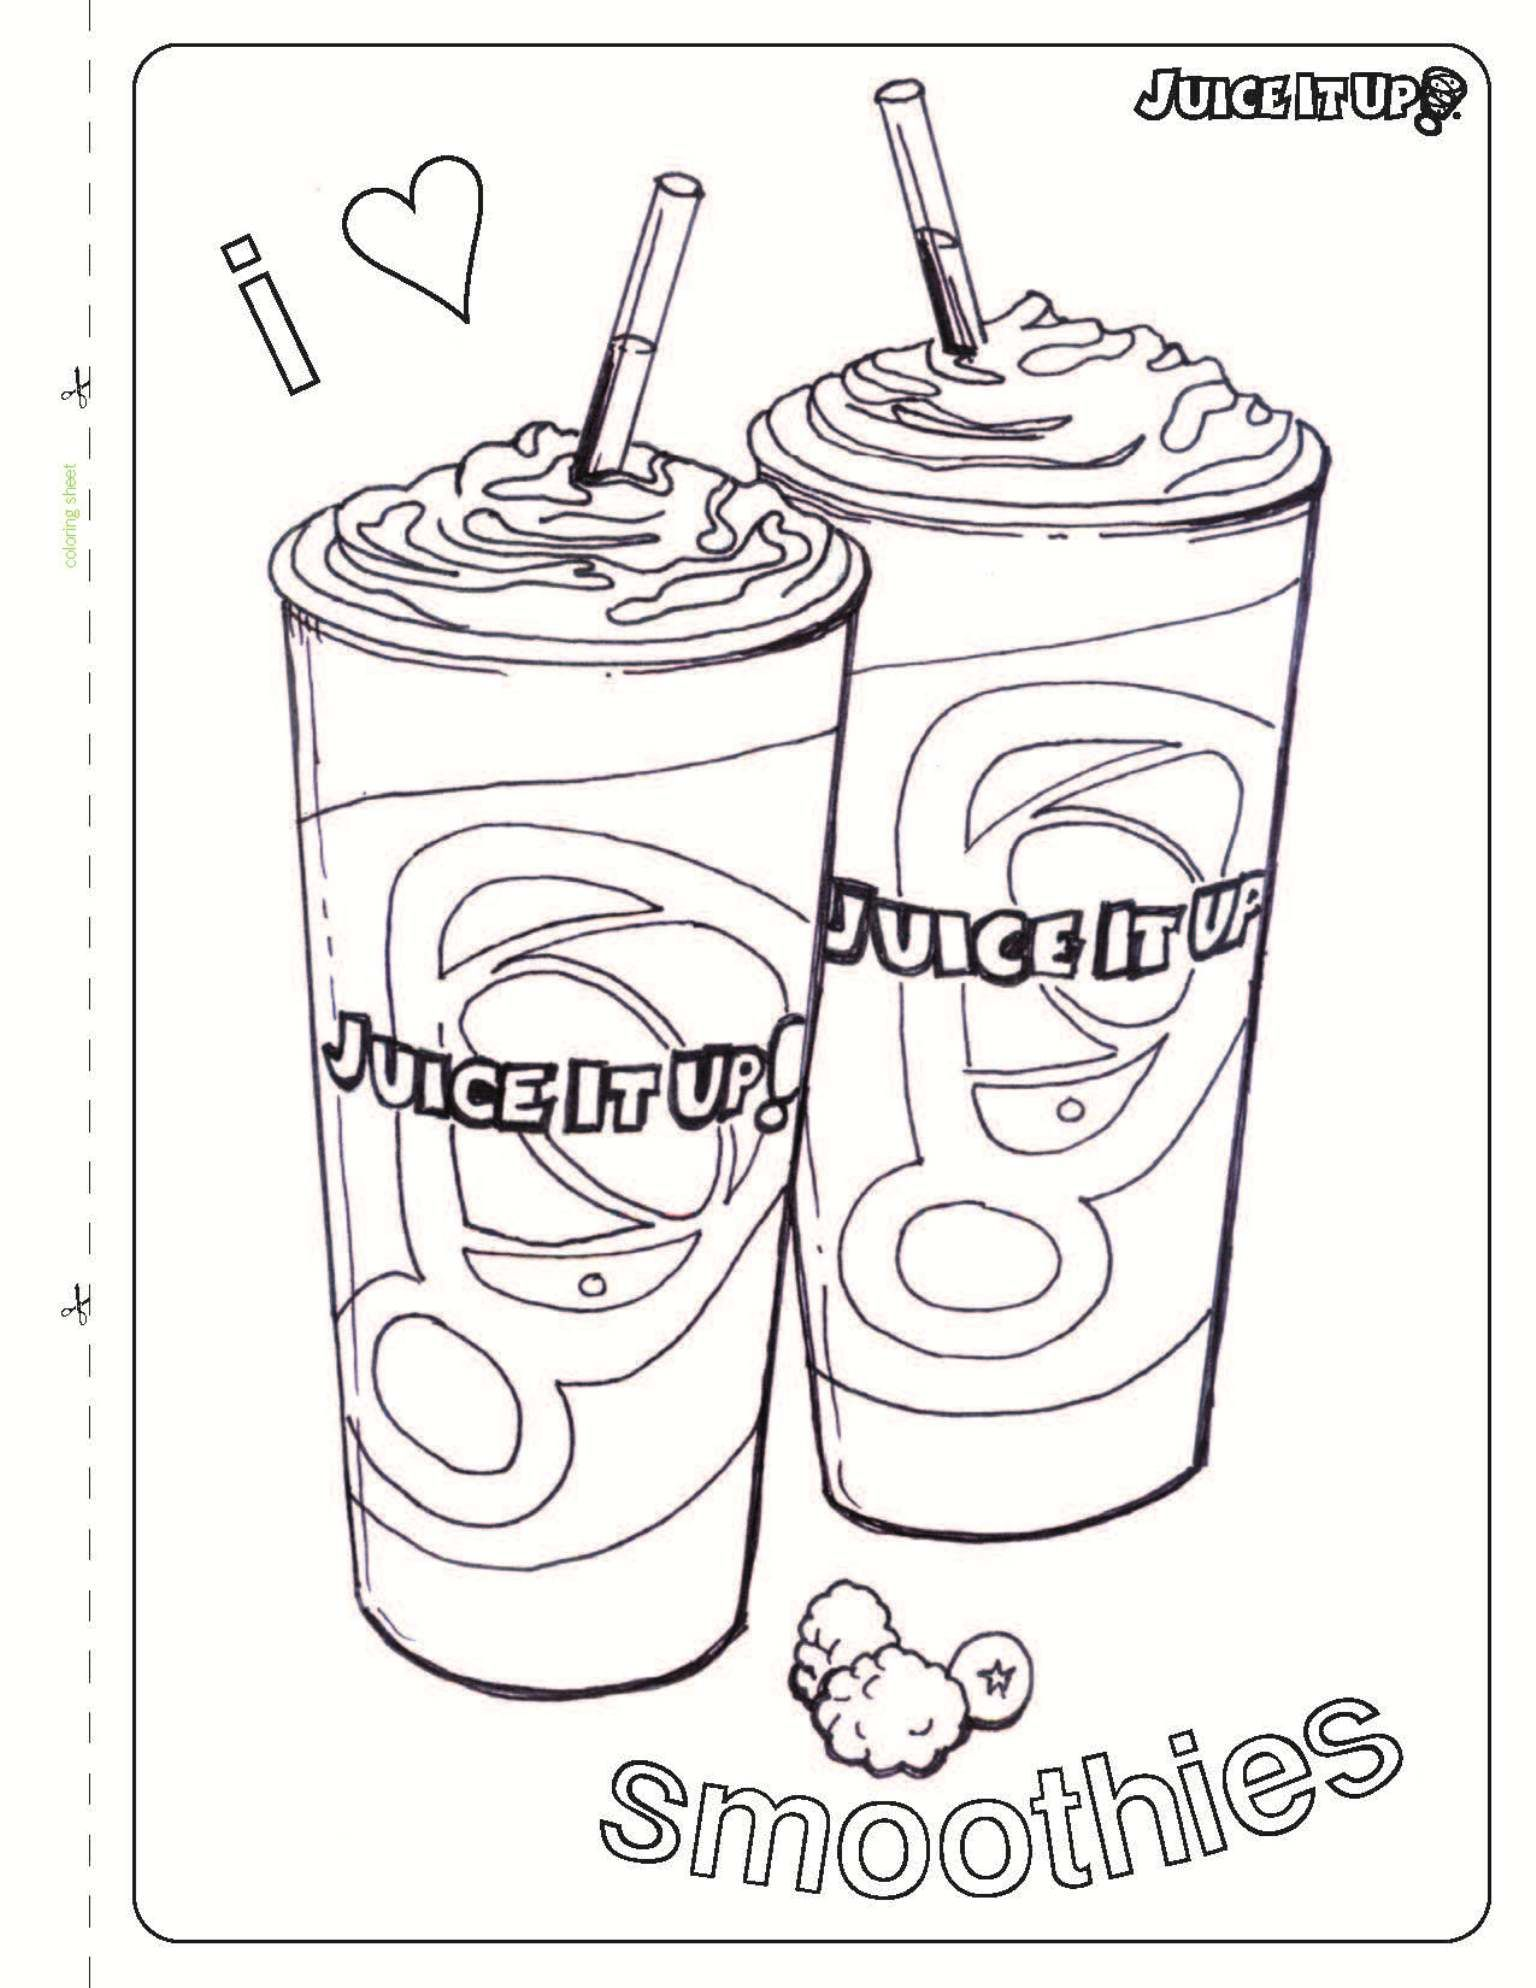 Juice It Up Kids Coloring Sheets